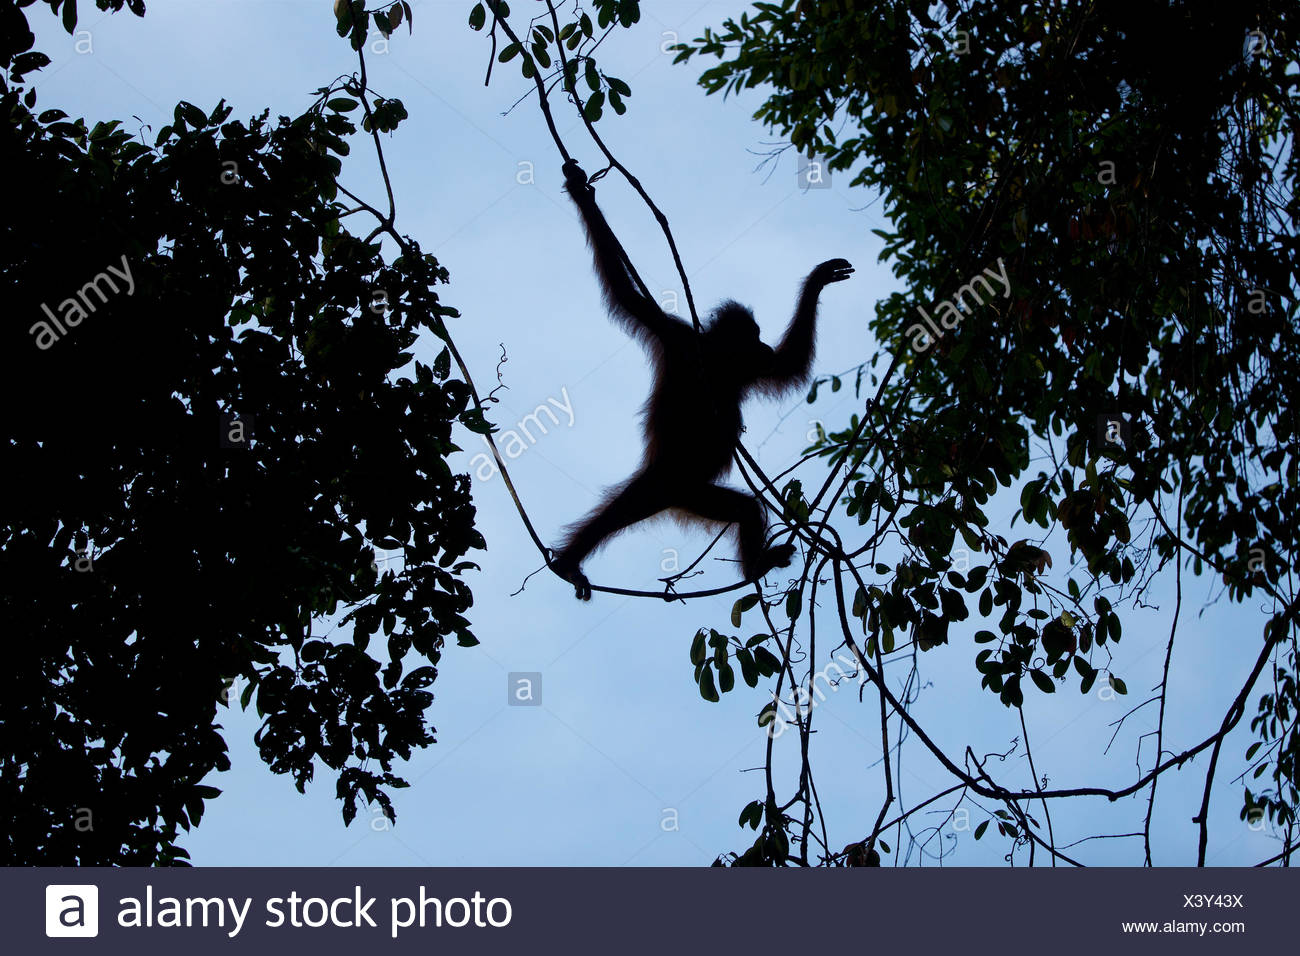 Adult female Bornean orangutan, Pongo pygmaeus wurmbii, with an injured left foot, swings from the trees in Gunung Palung National Park. - Stock Image